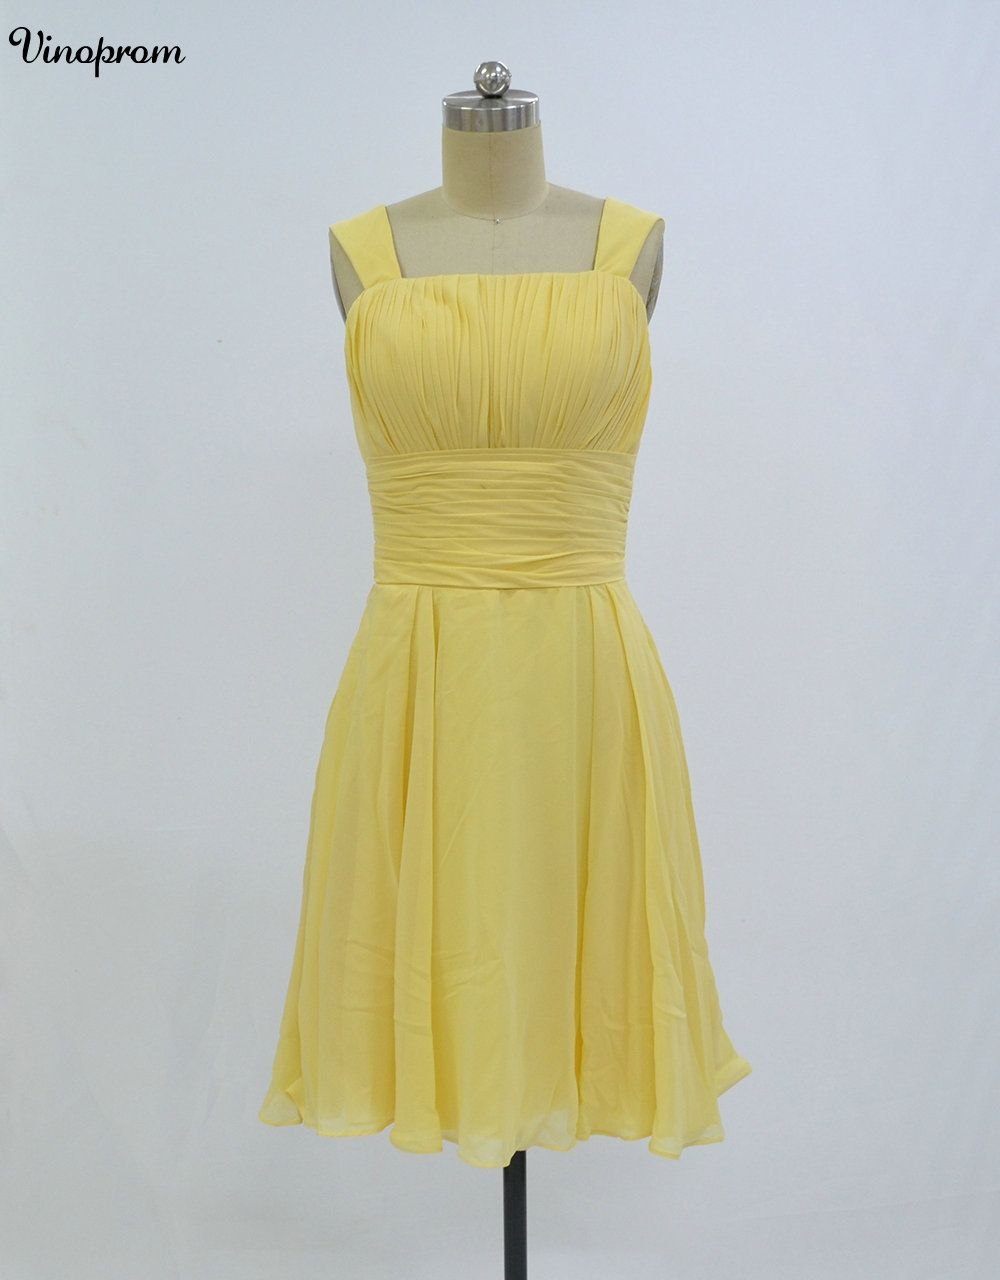 2018 cheap cocktail dresses a line strap backless mini length yellow 2018 cheap cocktail dresses a line strap backless mini length yellow chiffon women dresses party gowns ombrellifo Image collections